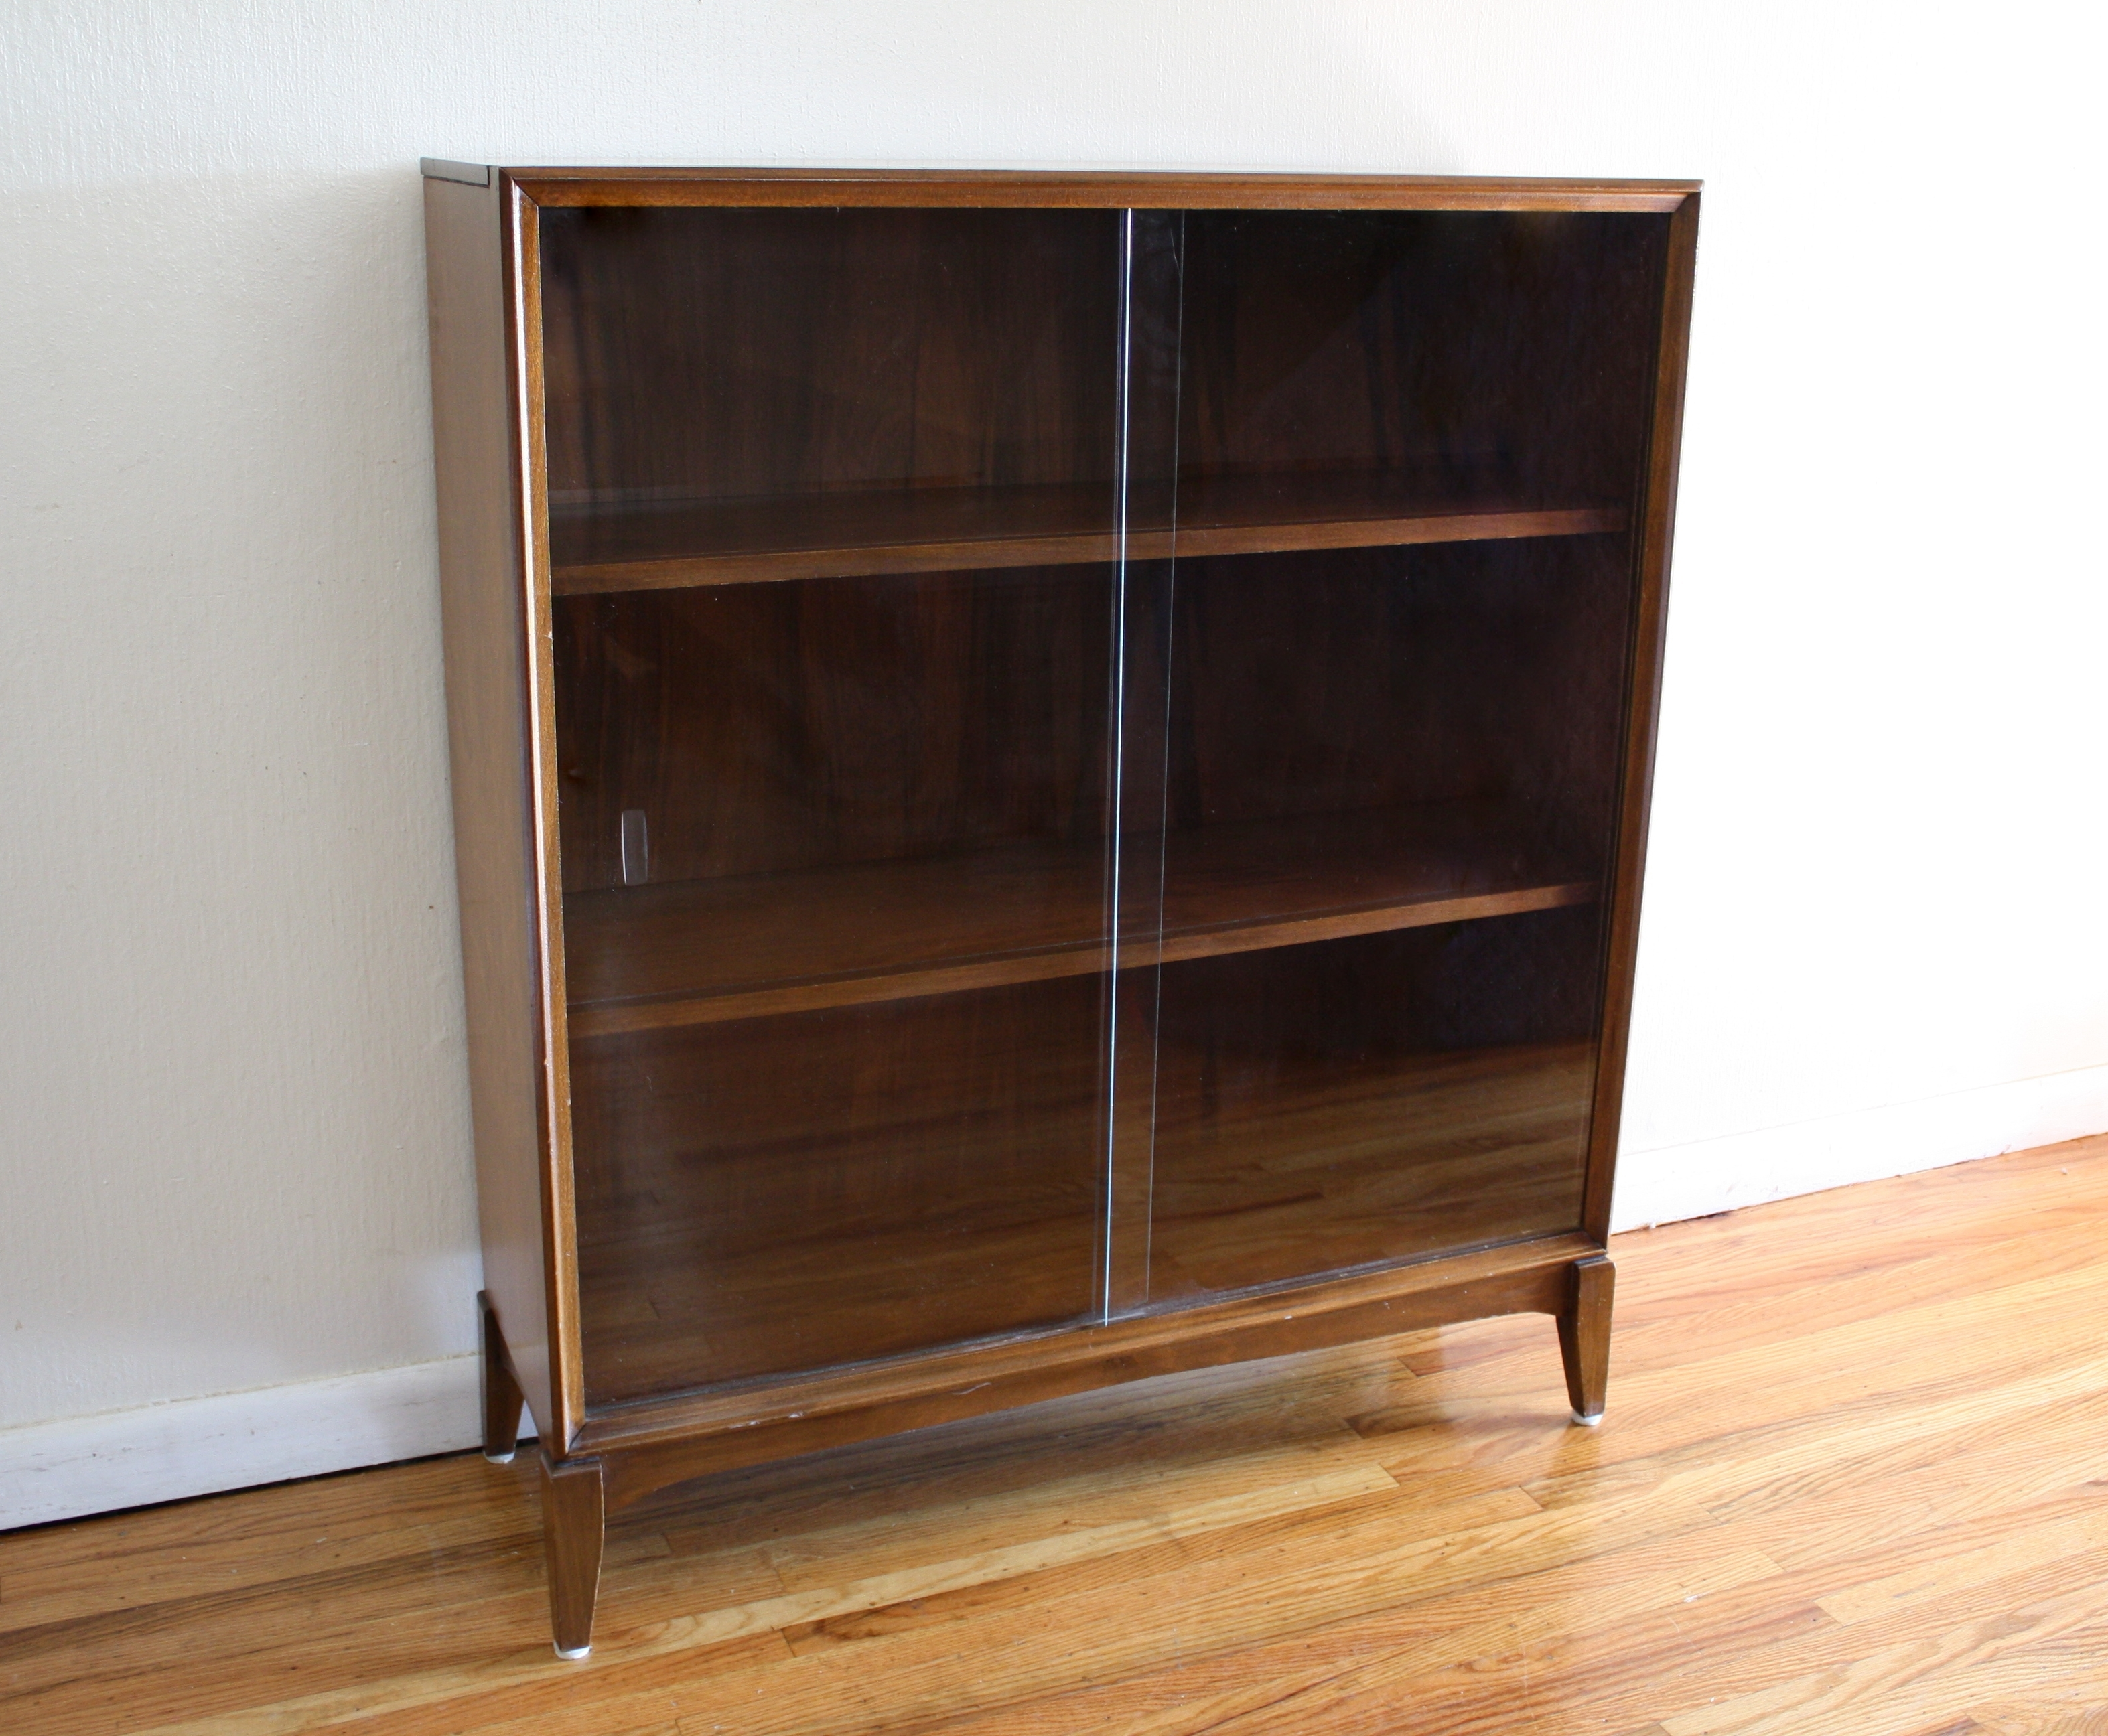 Midcentury Bookcases Within Popular 41 Mid Century Bookcase, Mid Century Modern Bookcase For Small (View 14 of 15)